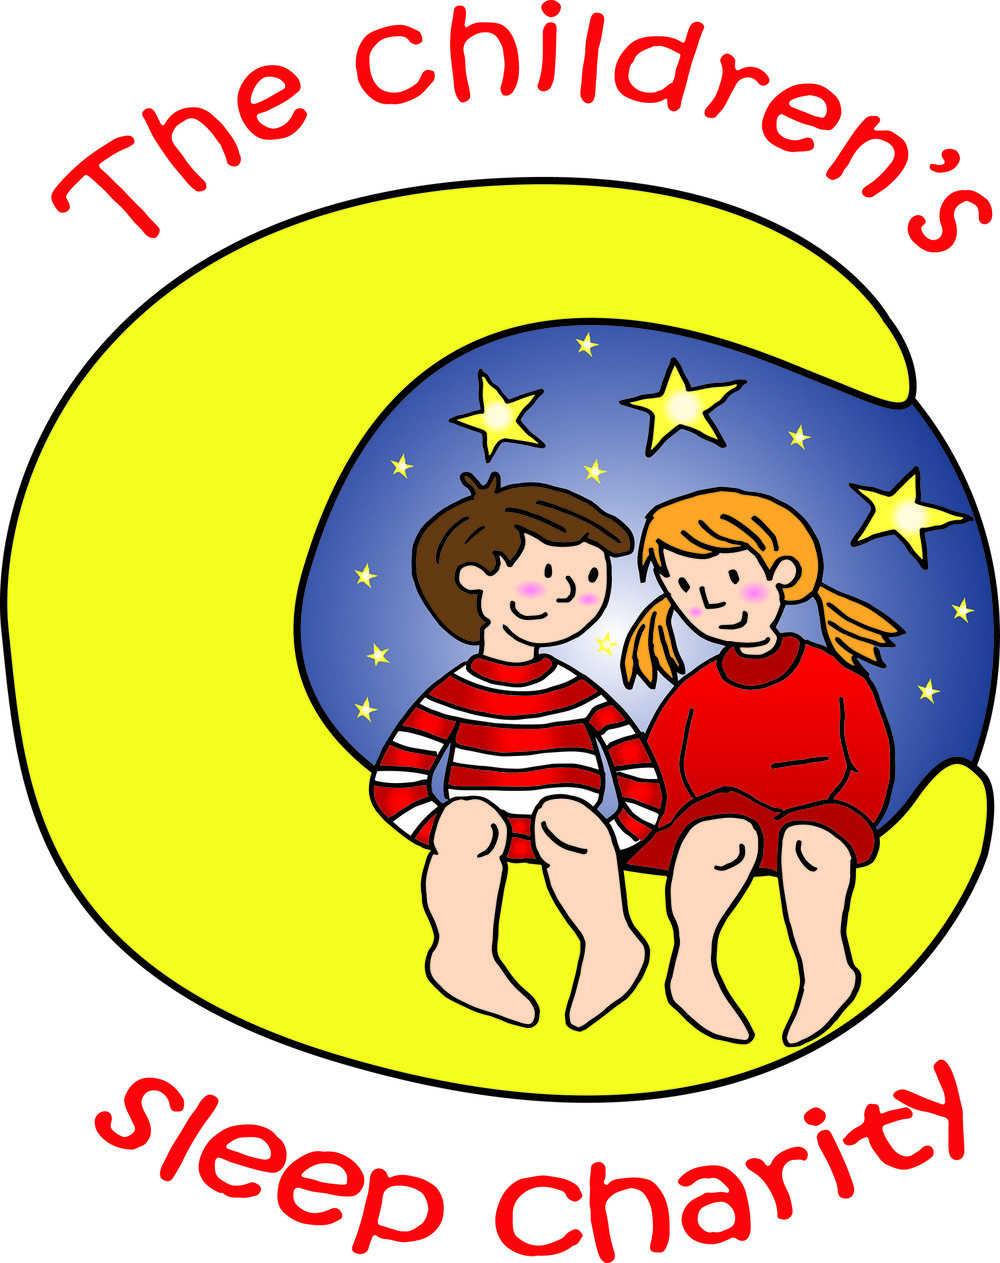 The Chidren_s Sleep Charity Logo.jpg